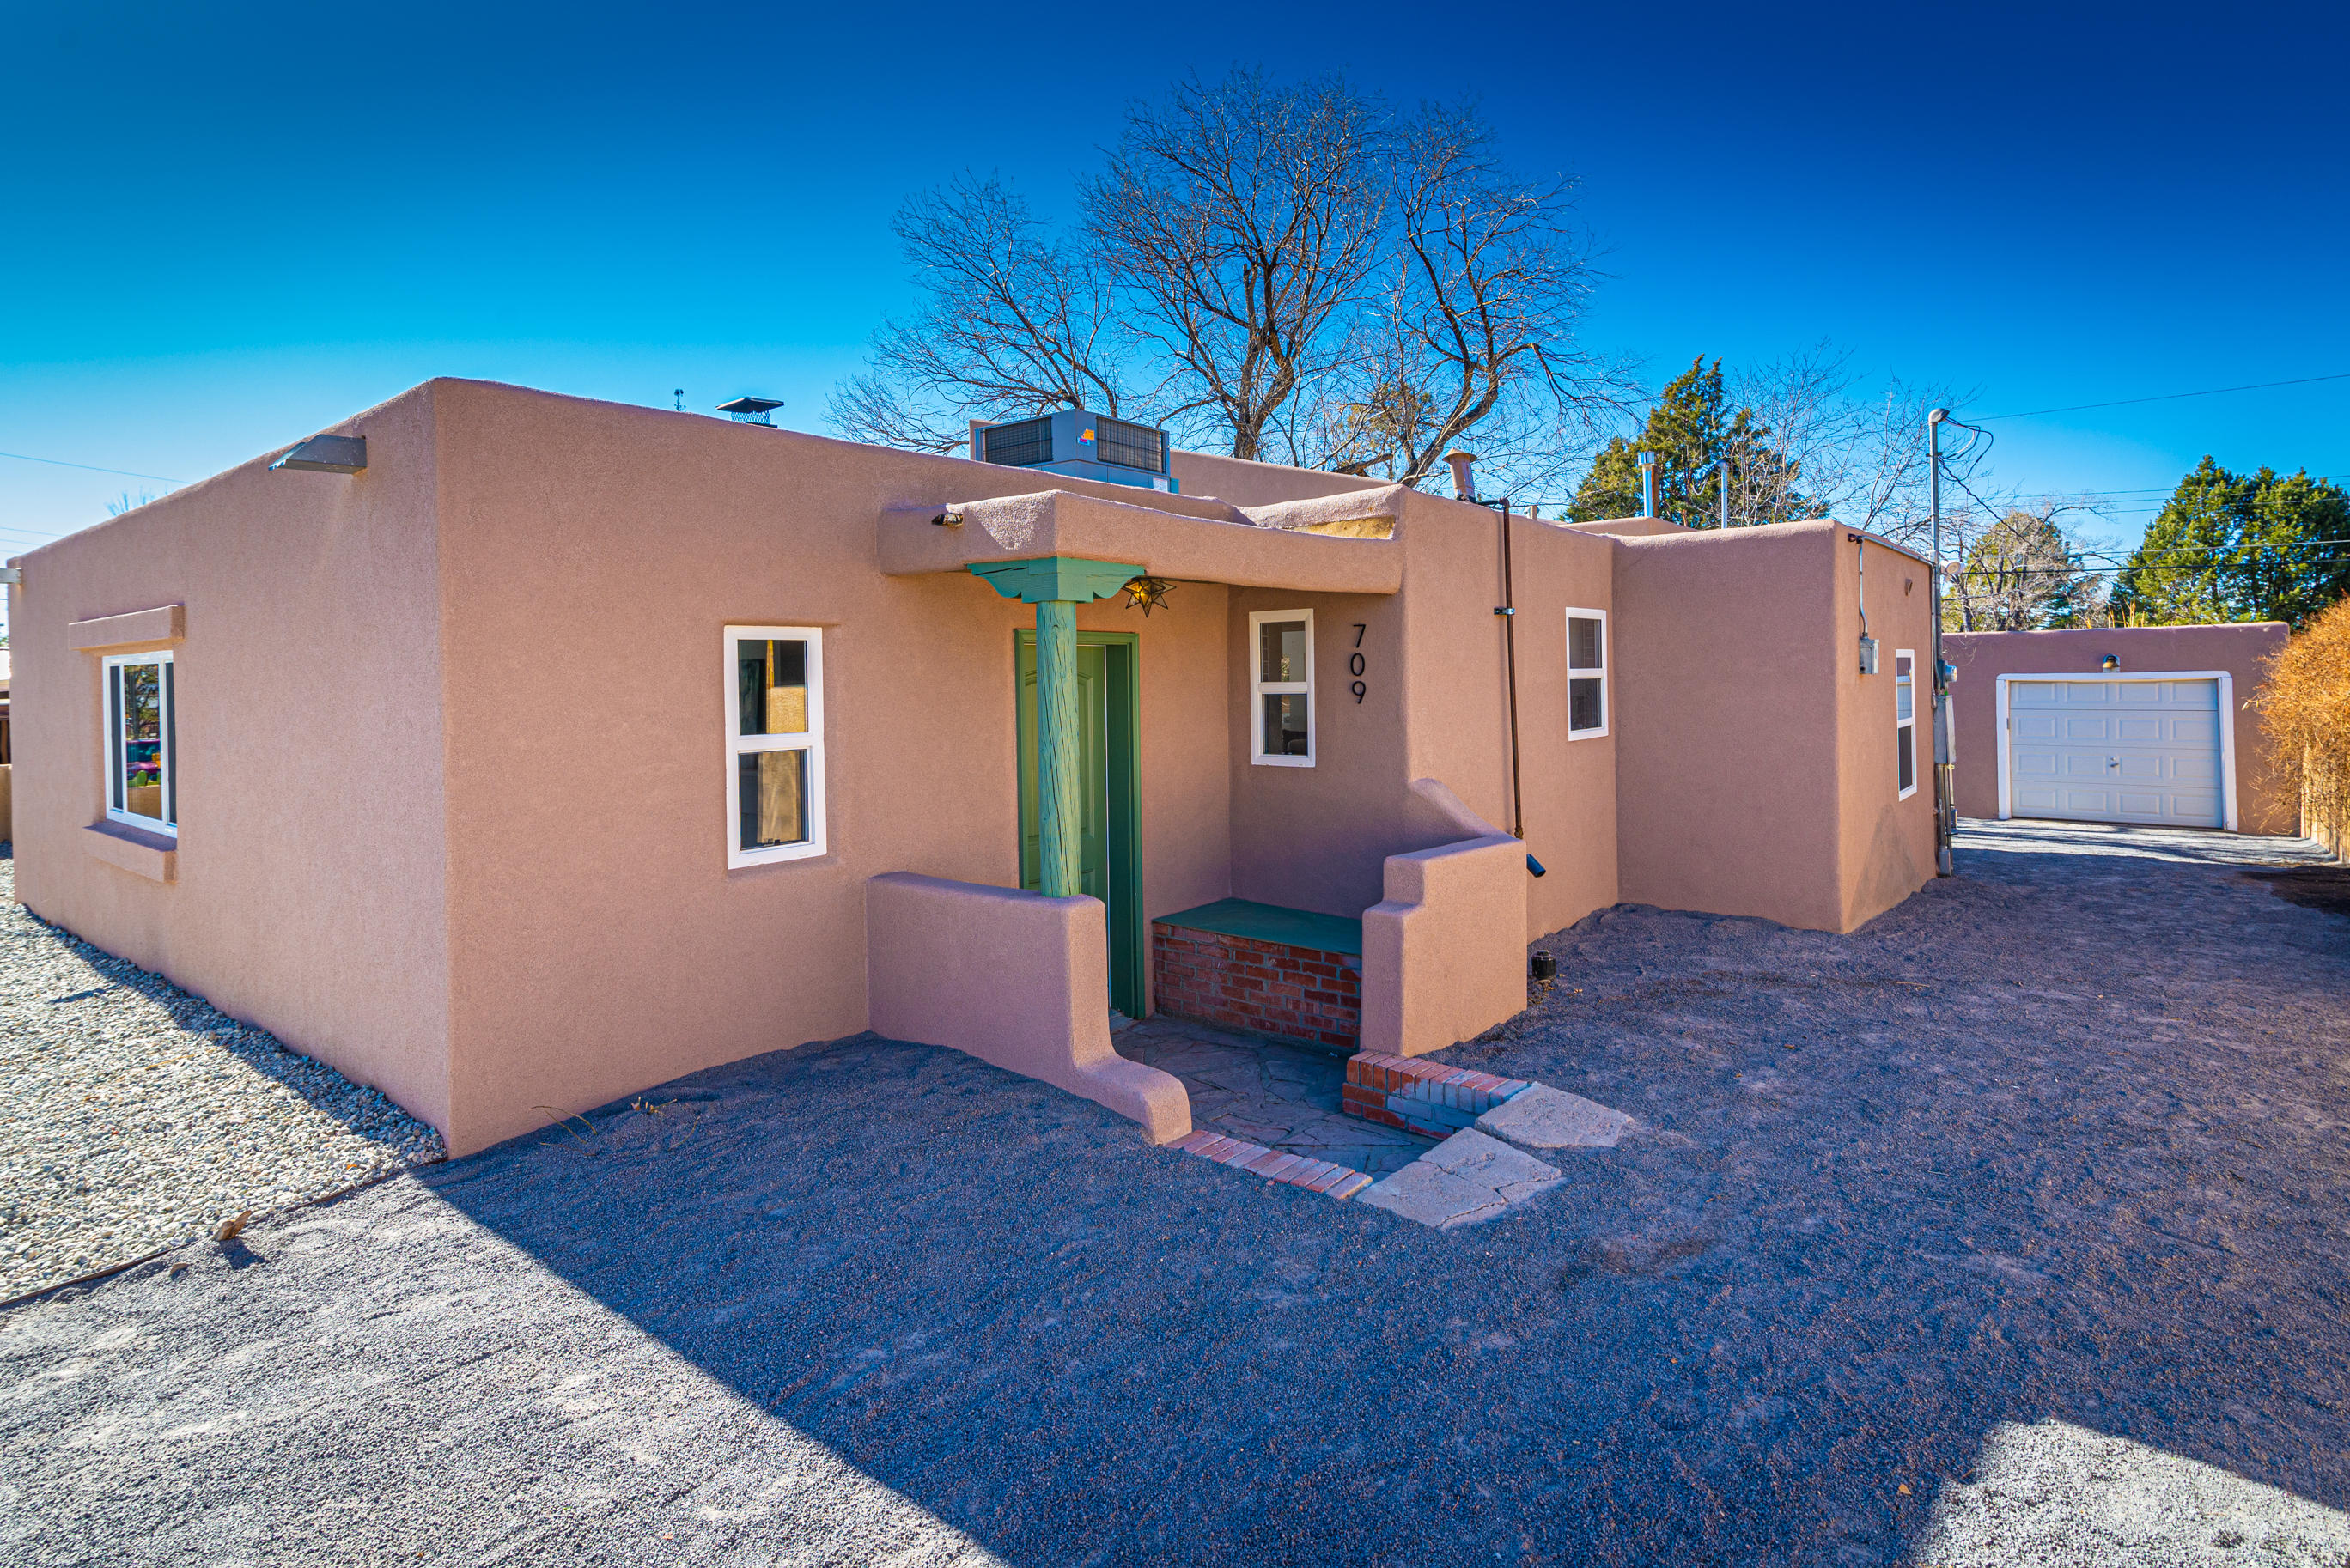 Beautifully updated home in the heart of Albuquerque!! Gorgeous living room with a high ceiling!! Kitchen is equipped with quartz countertops and stainless steel appliances!! HUGE lot!! New Stucco and refrigerated air!! Schedule your appointment to see this home today!!